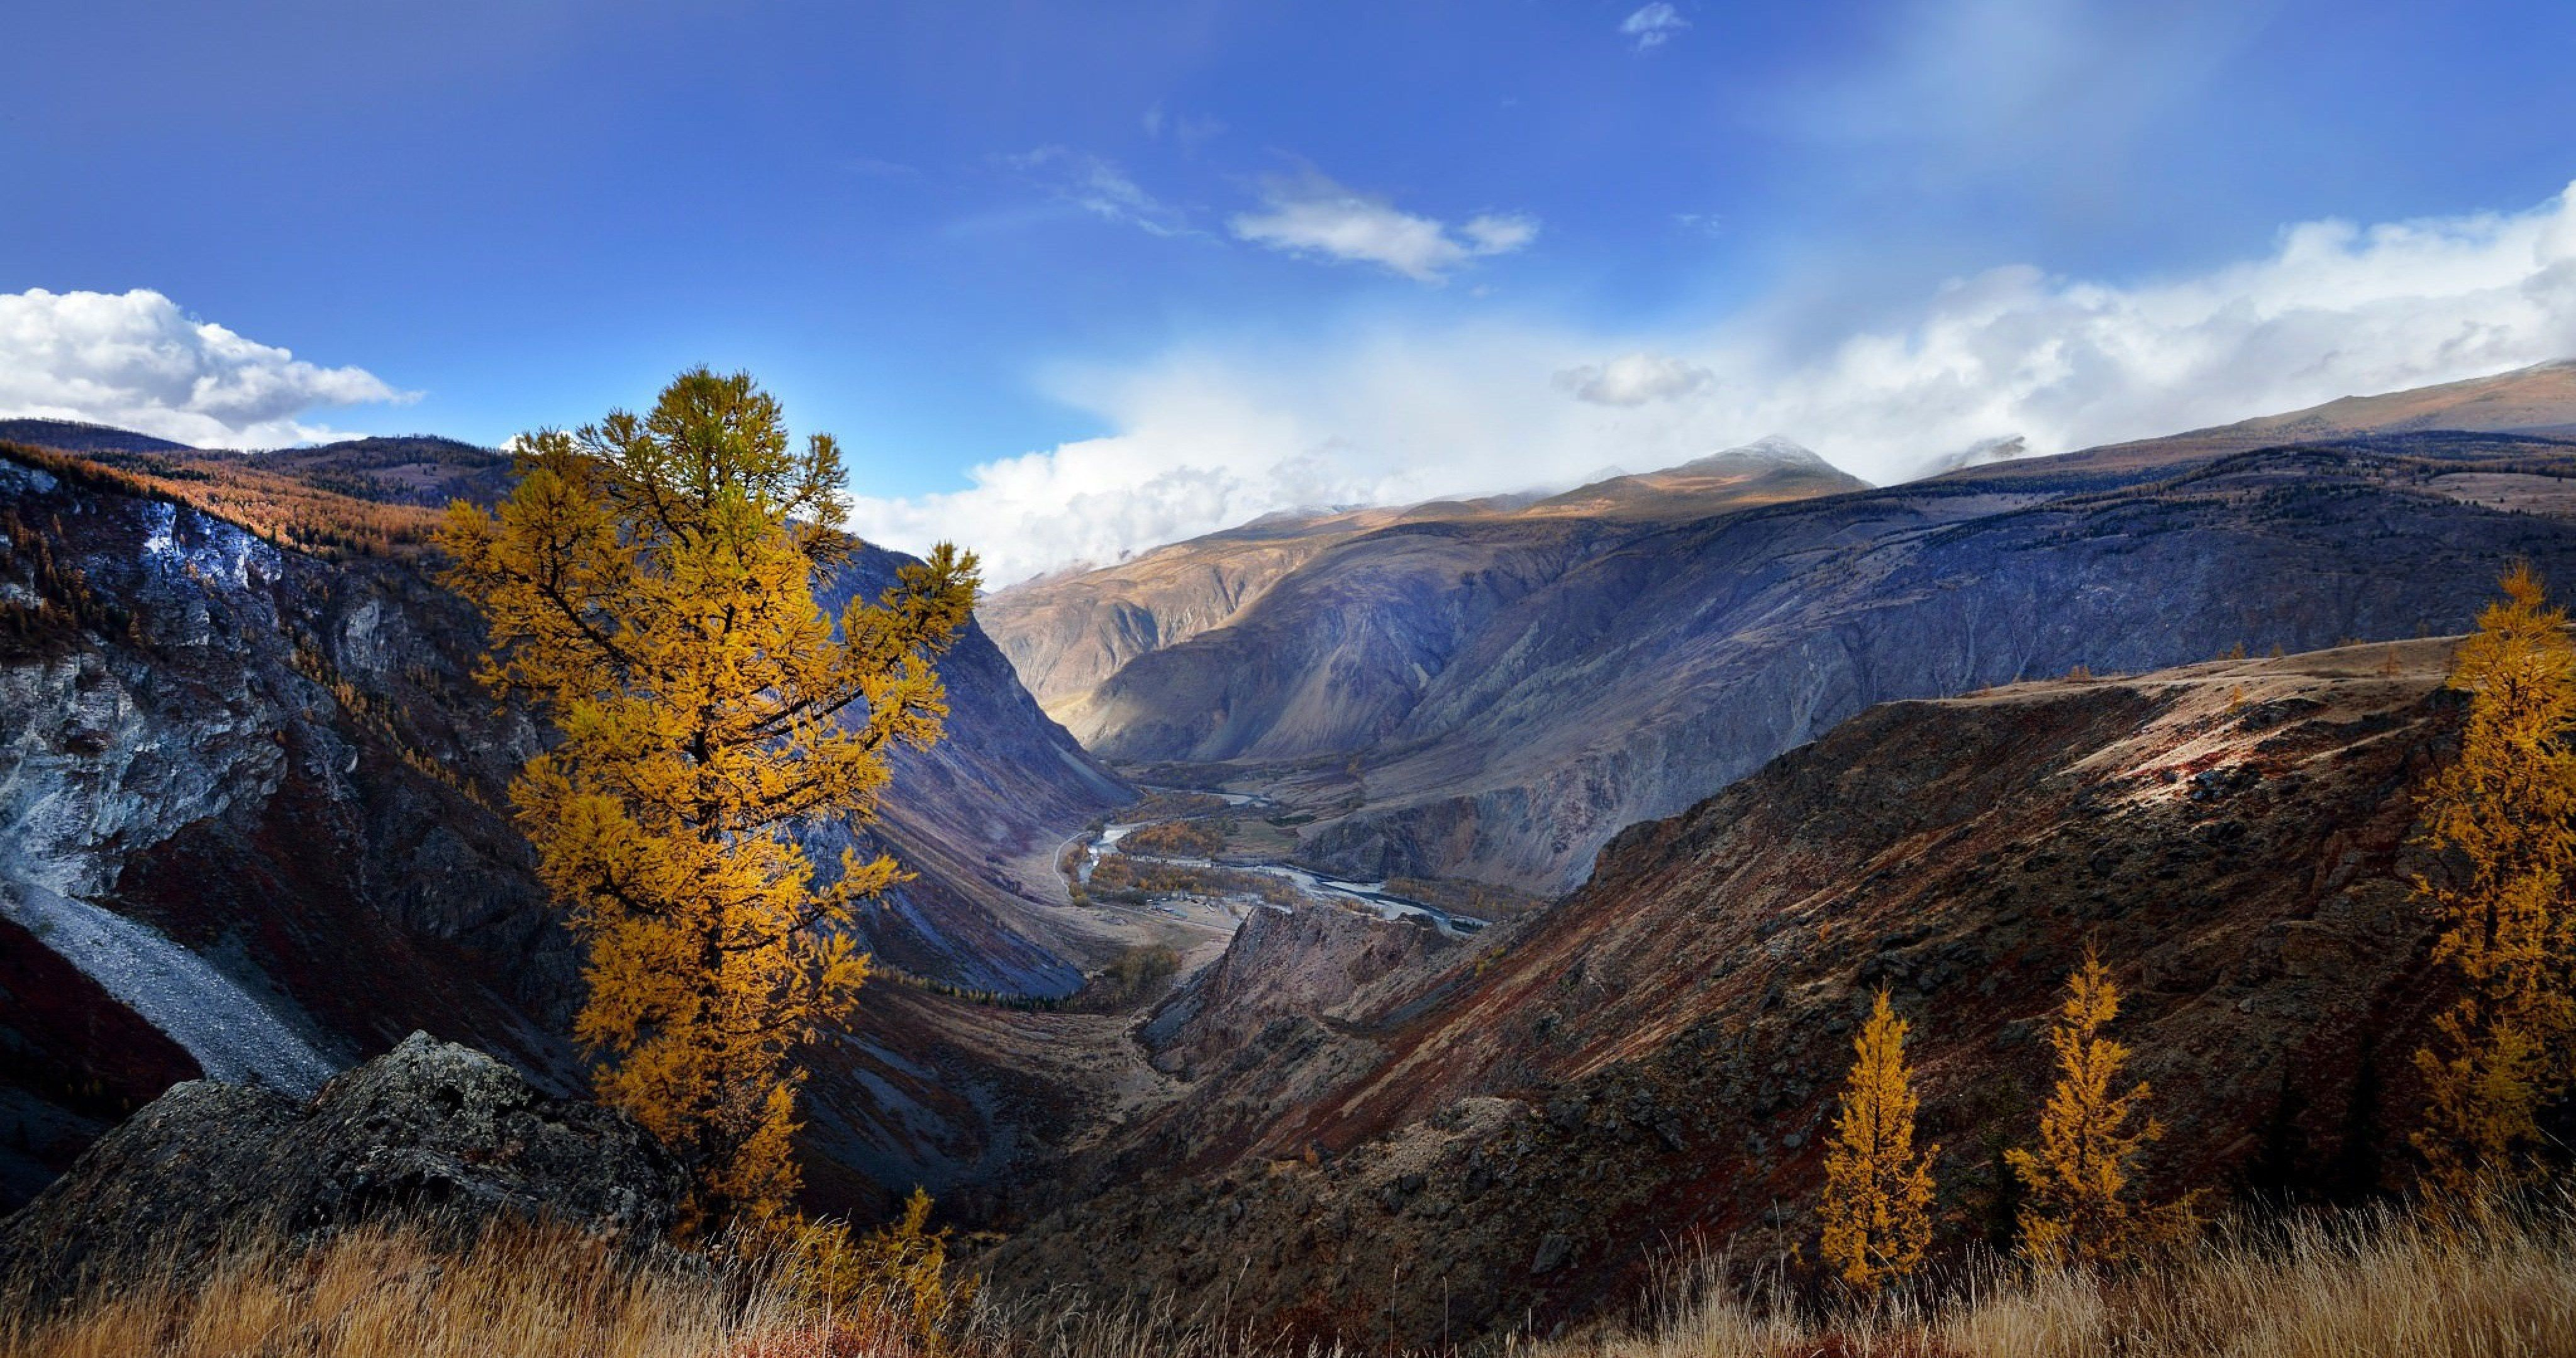 altai mountains 4k ultra hd wallpaper Altai mountains